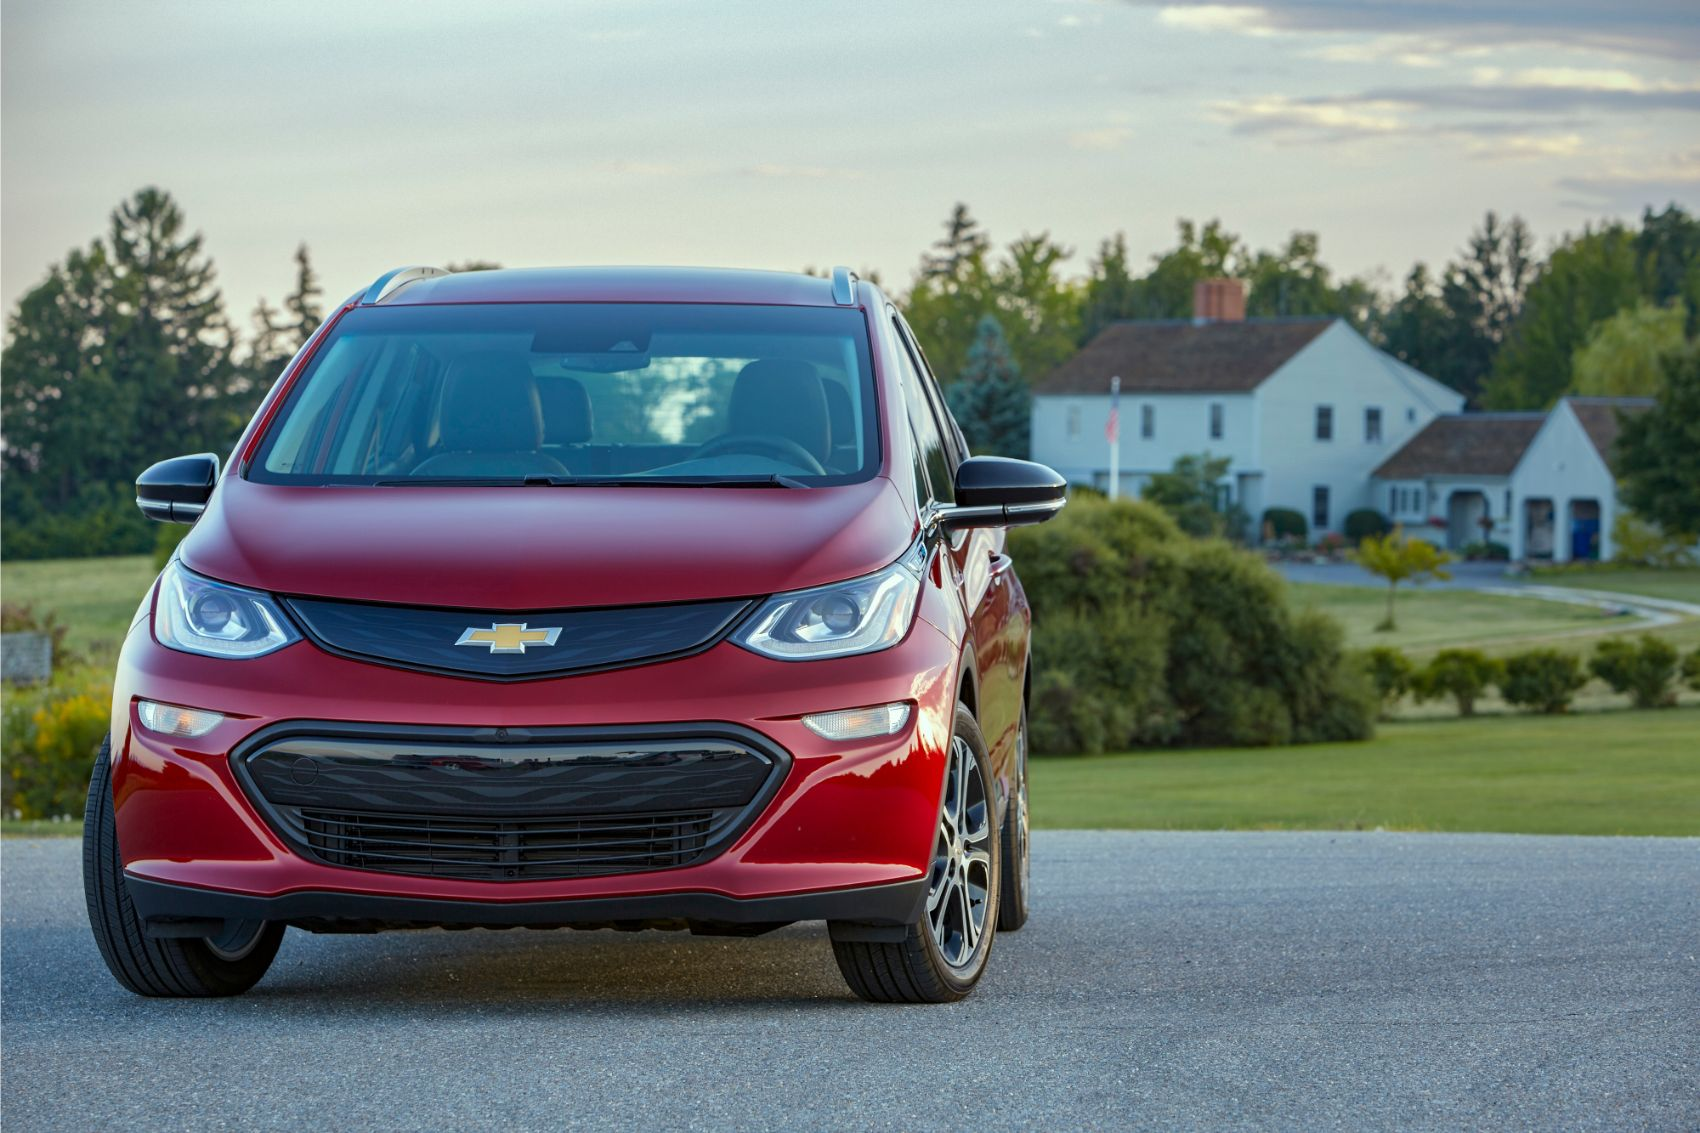 2020 Chevy Bolt Change In The Interest Of Range